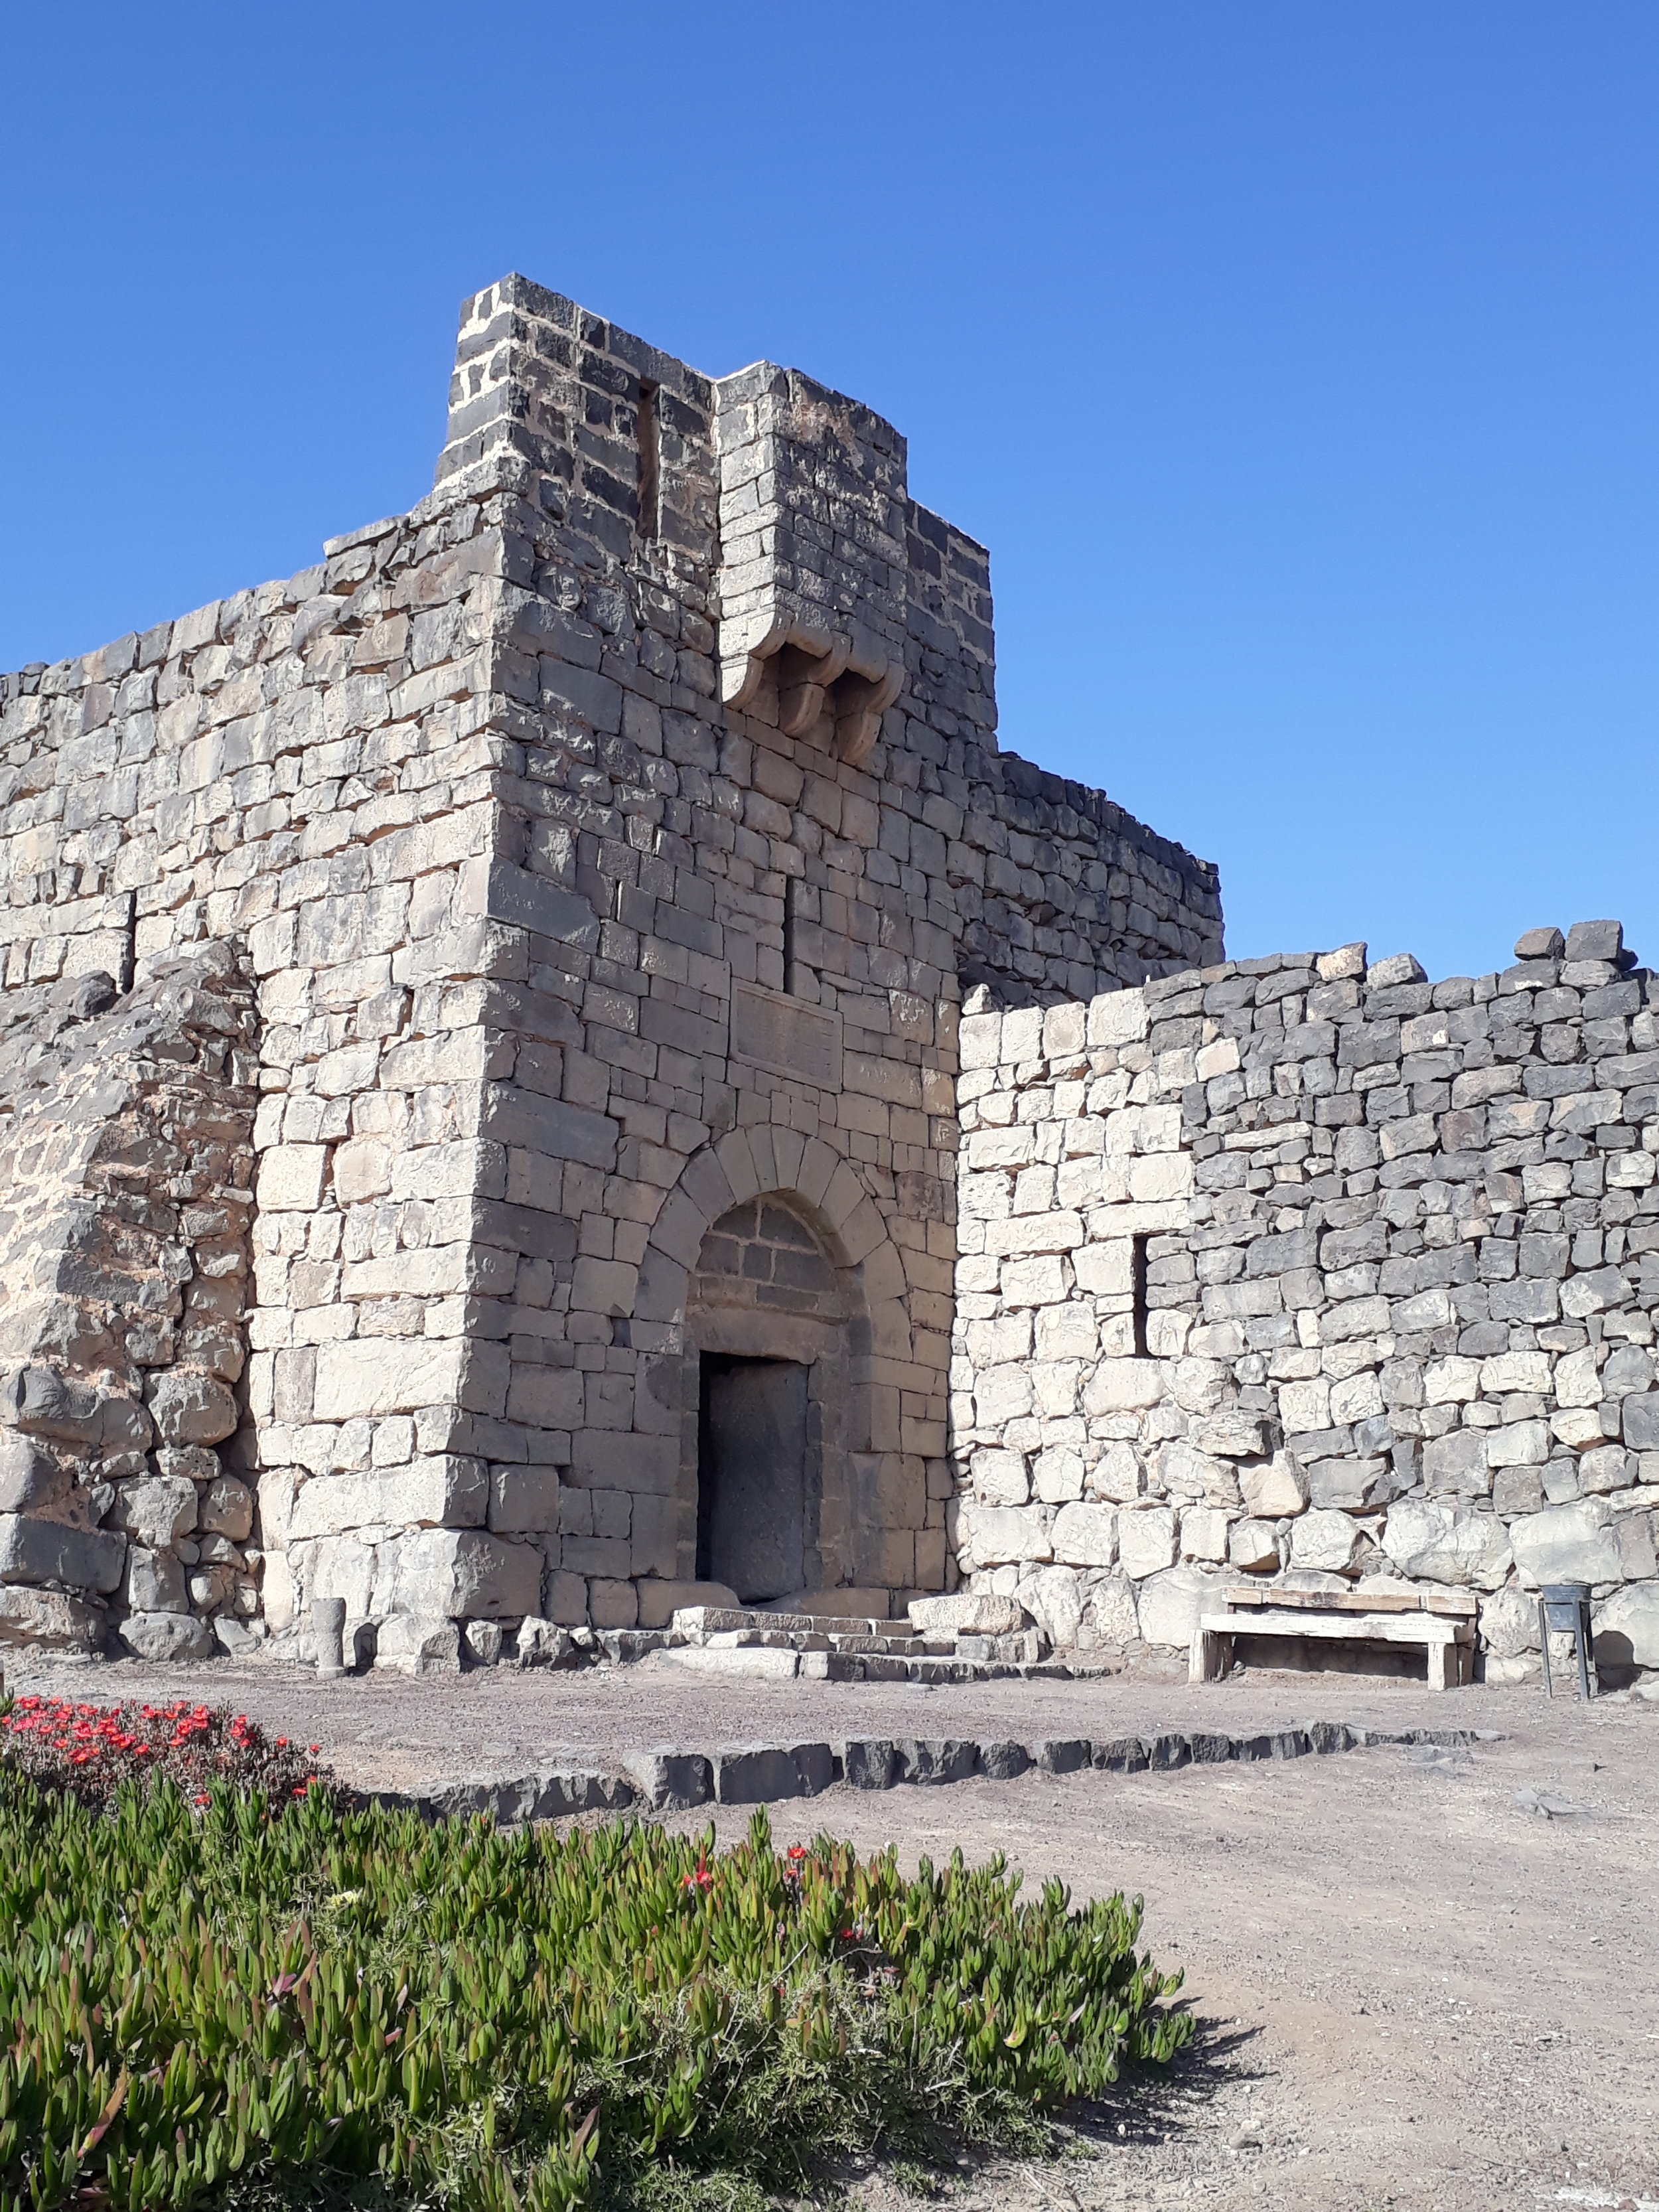 Entrance to Azraq Castle Jordan